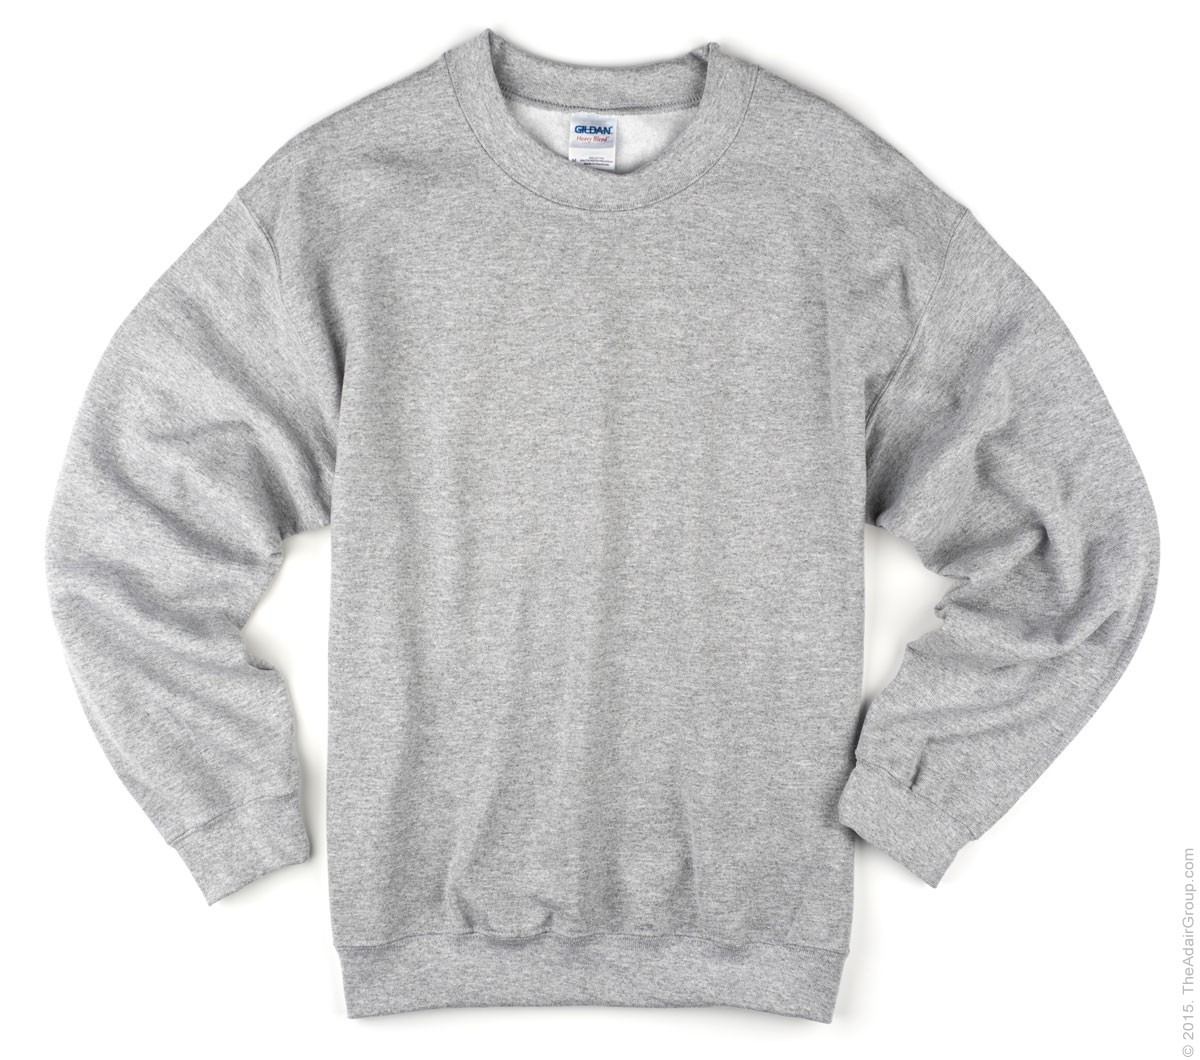 Sport Grey Adult Crewneck Sweatshirt | The Adair Group